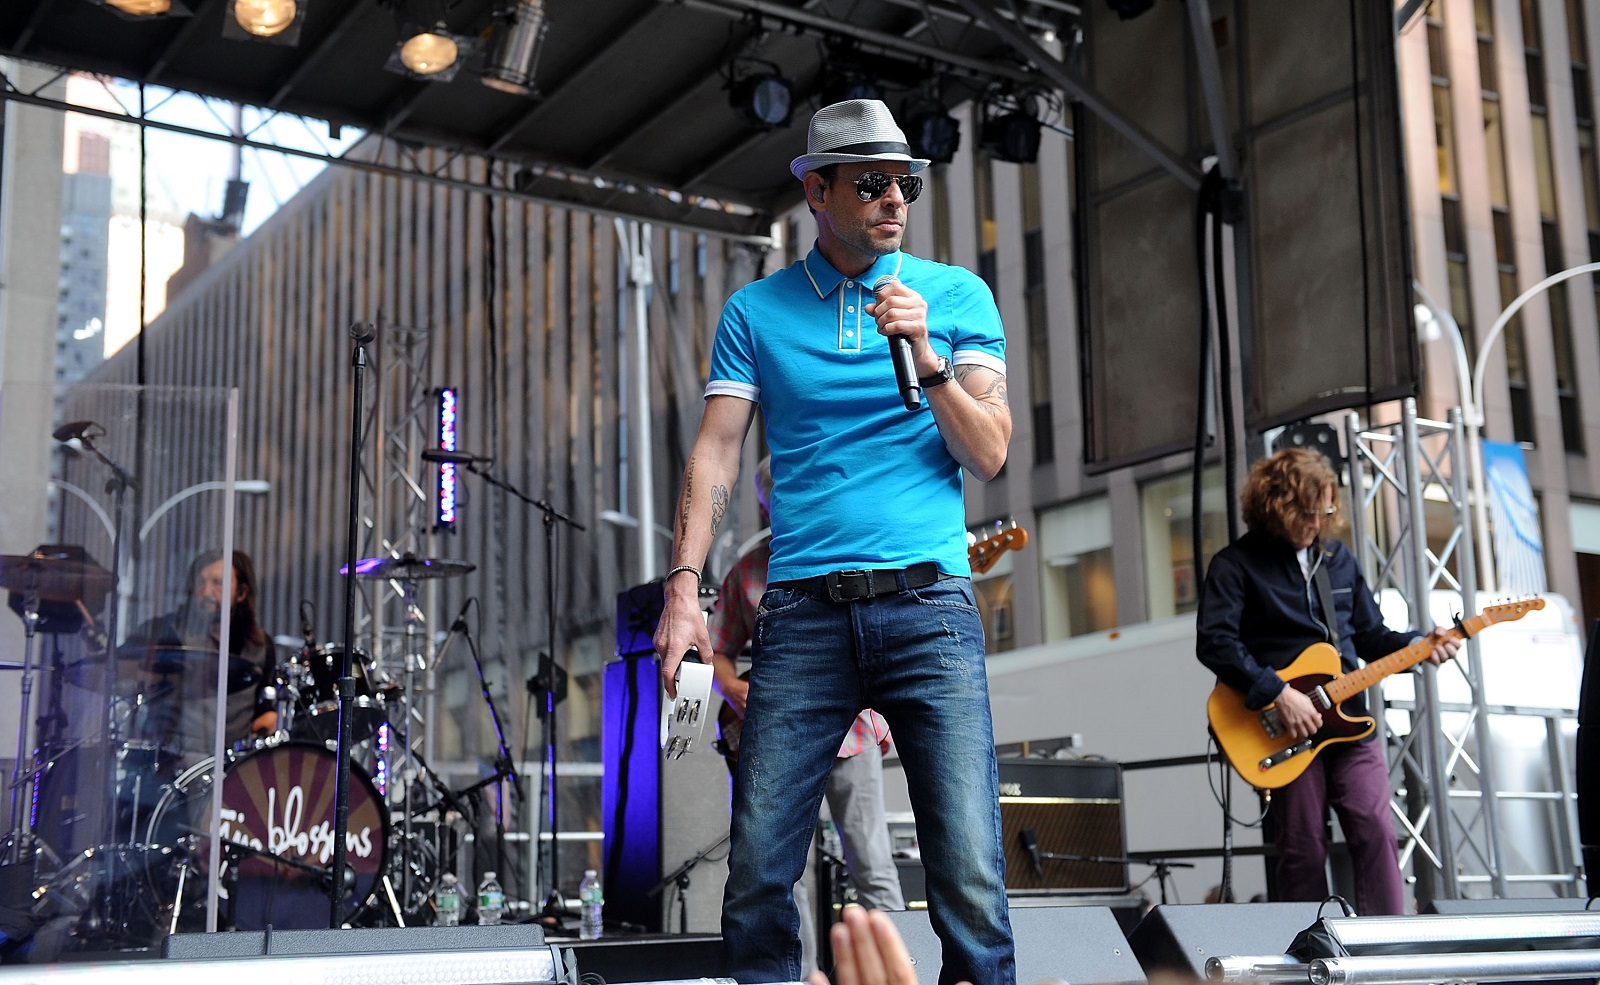 Robin Wilson, front, is the lead singer of the Gin Blossoms, who play Saturday just over the Canadian border. (Getty Images)